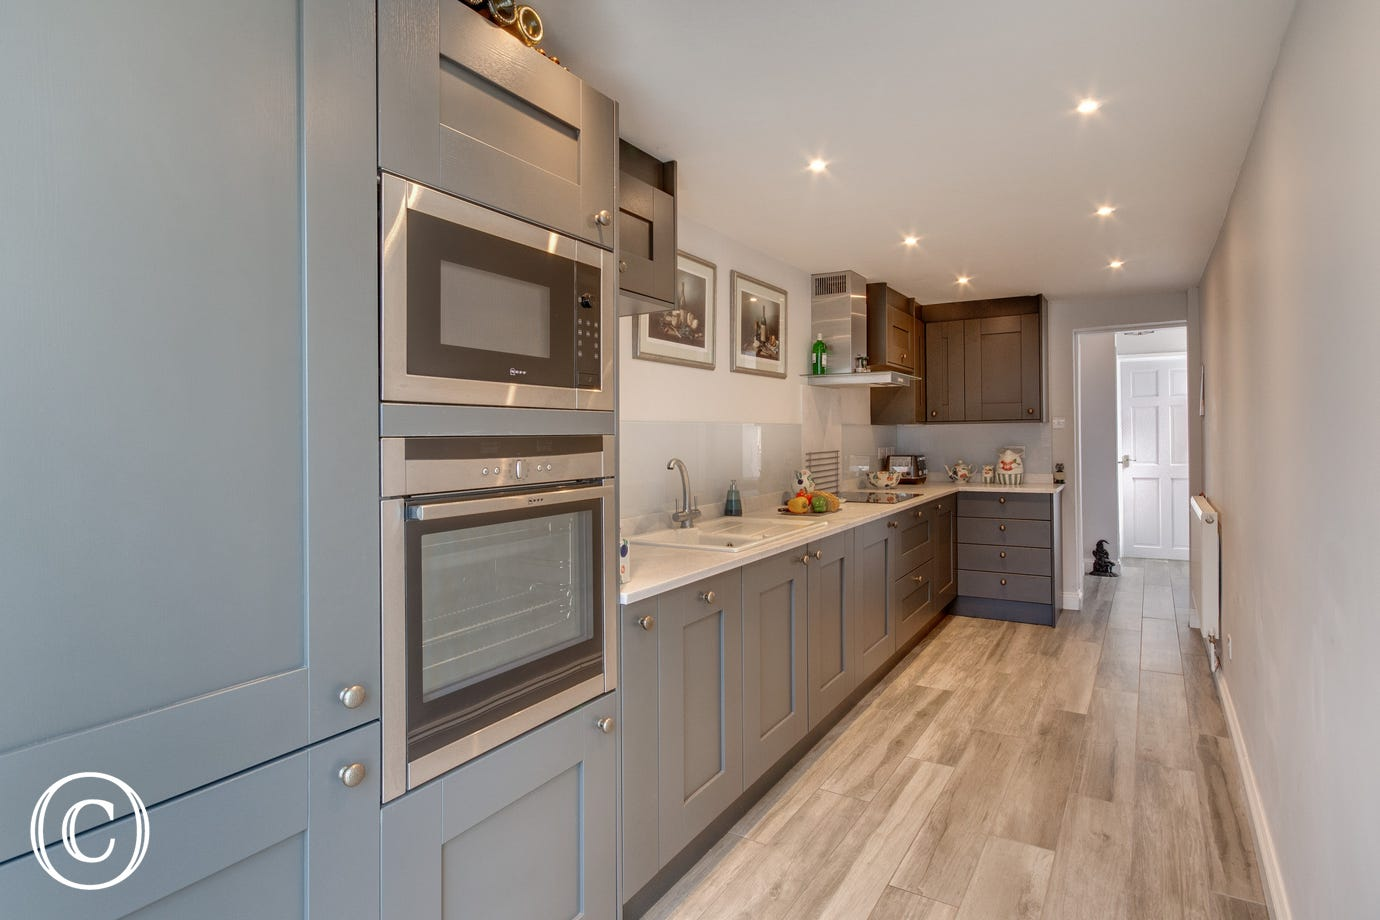 Kitchen with double oven, kitchen units and worktop